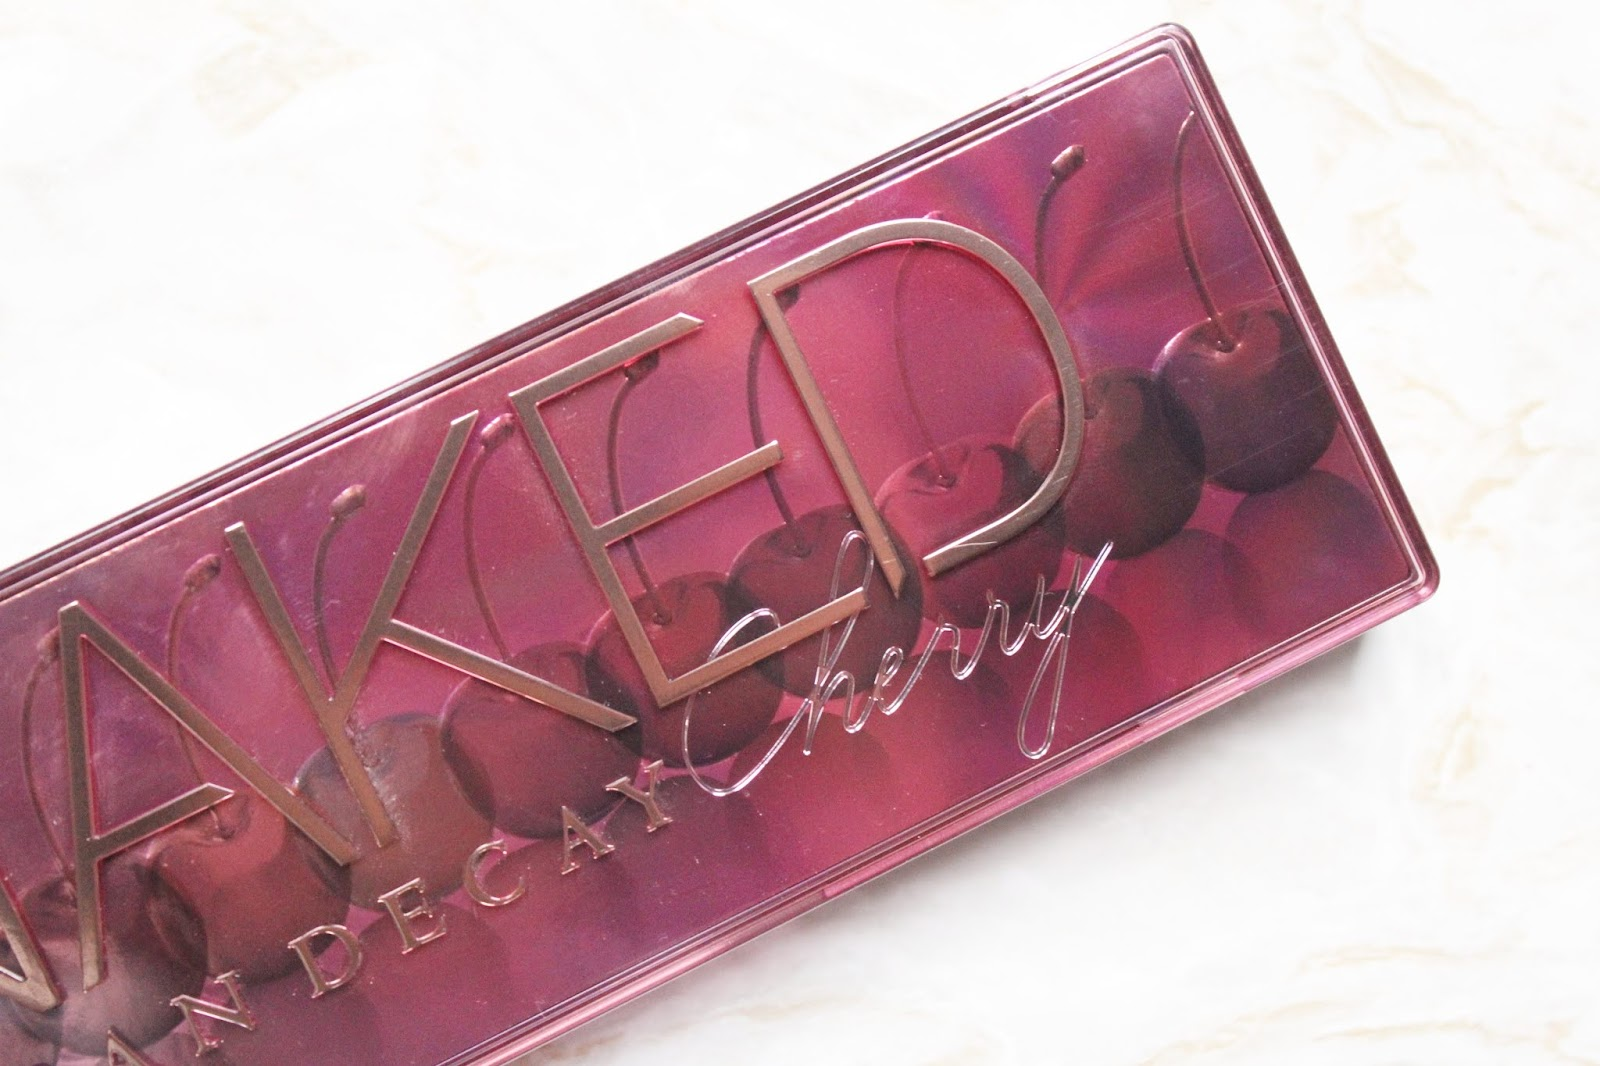 Urban Decay Naked Cherry Palette Review